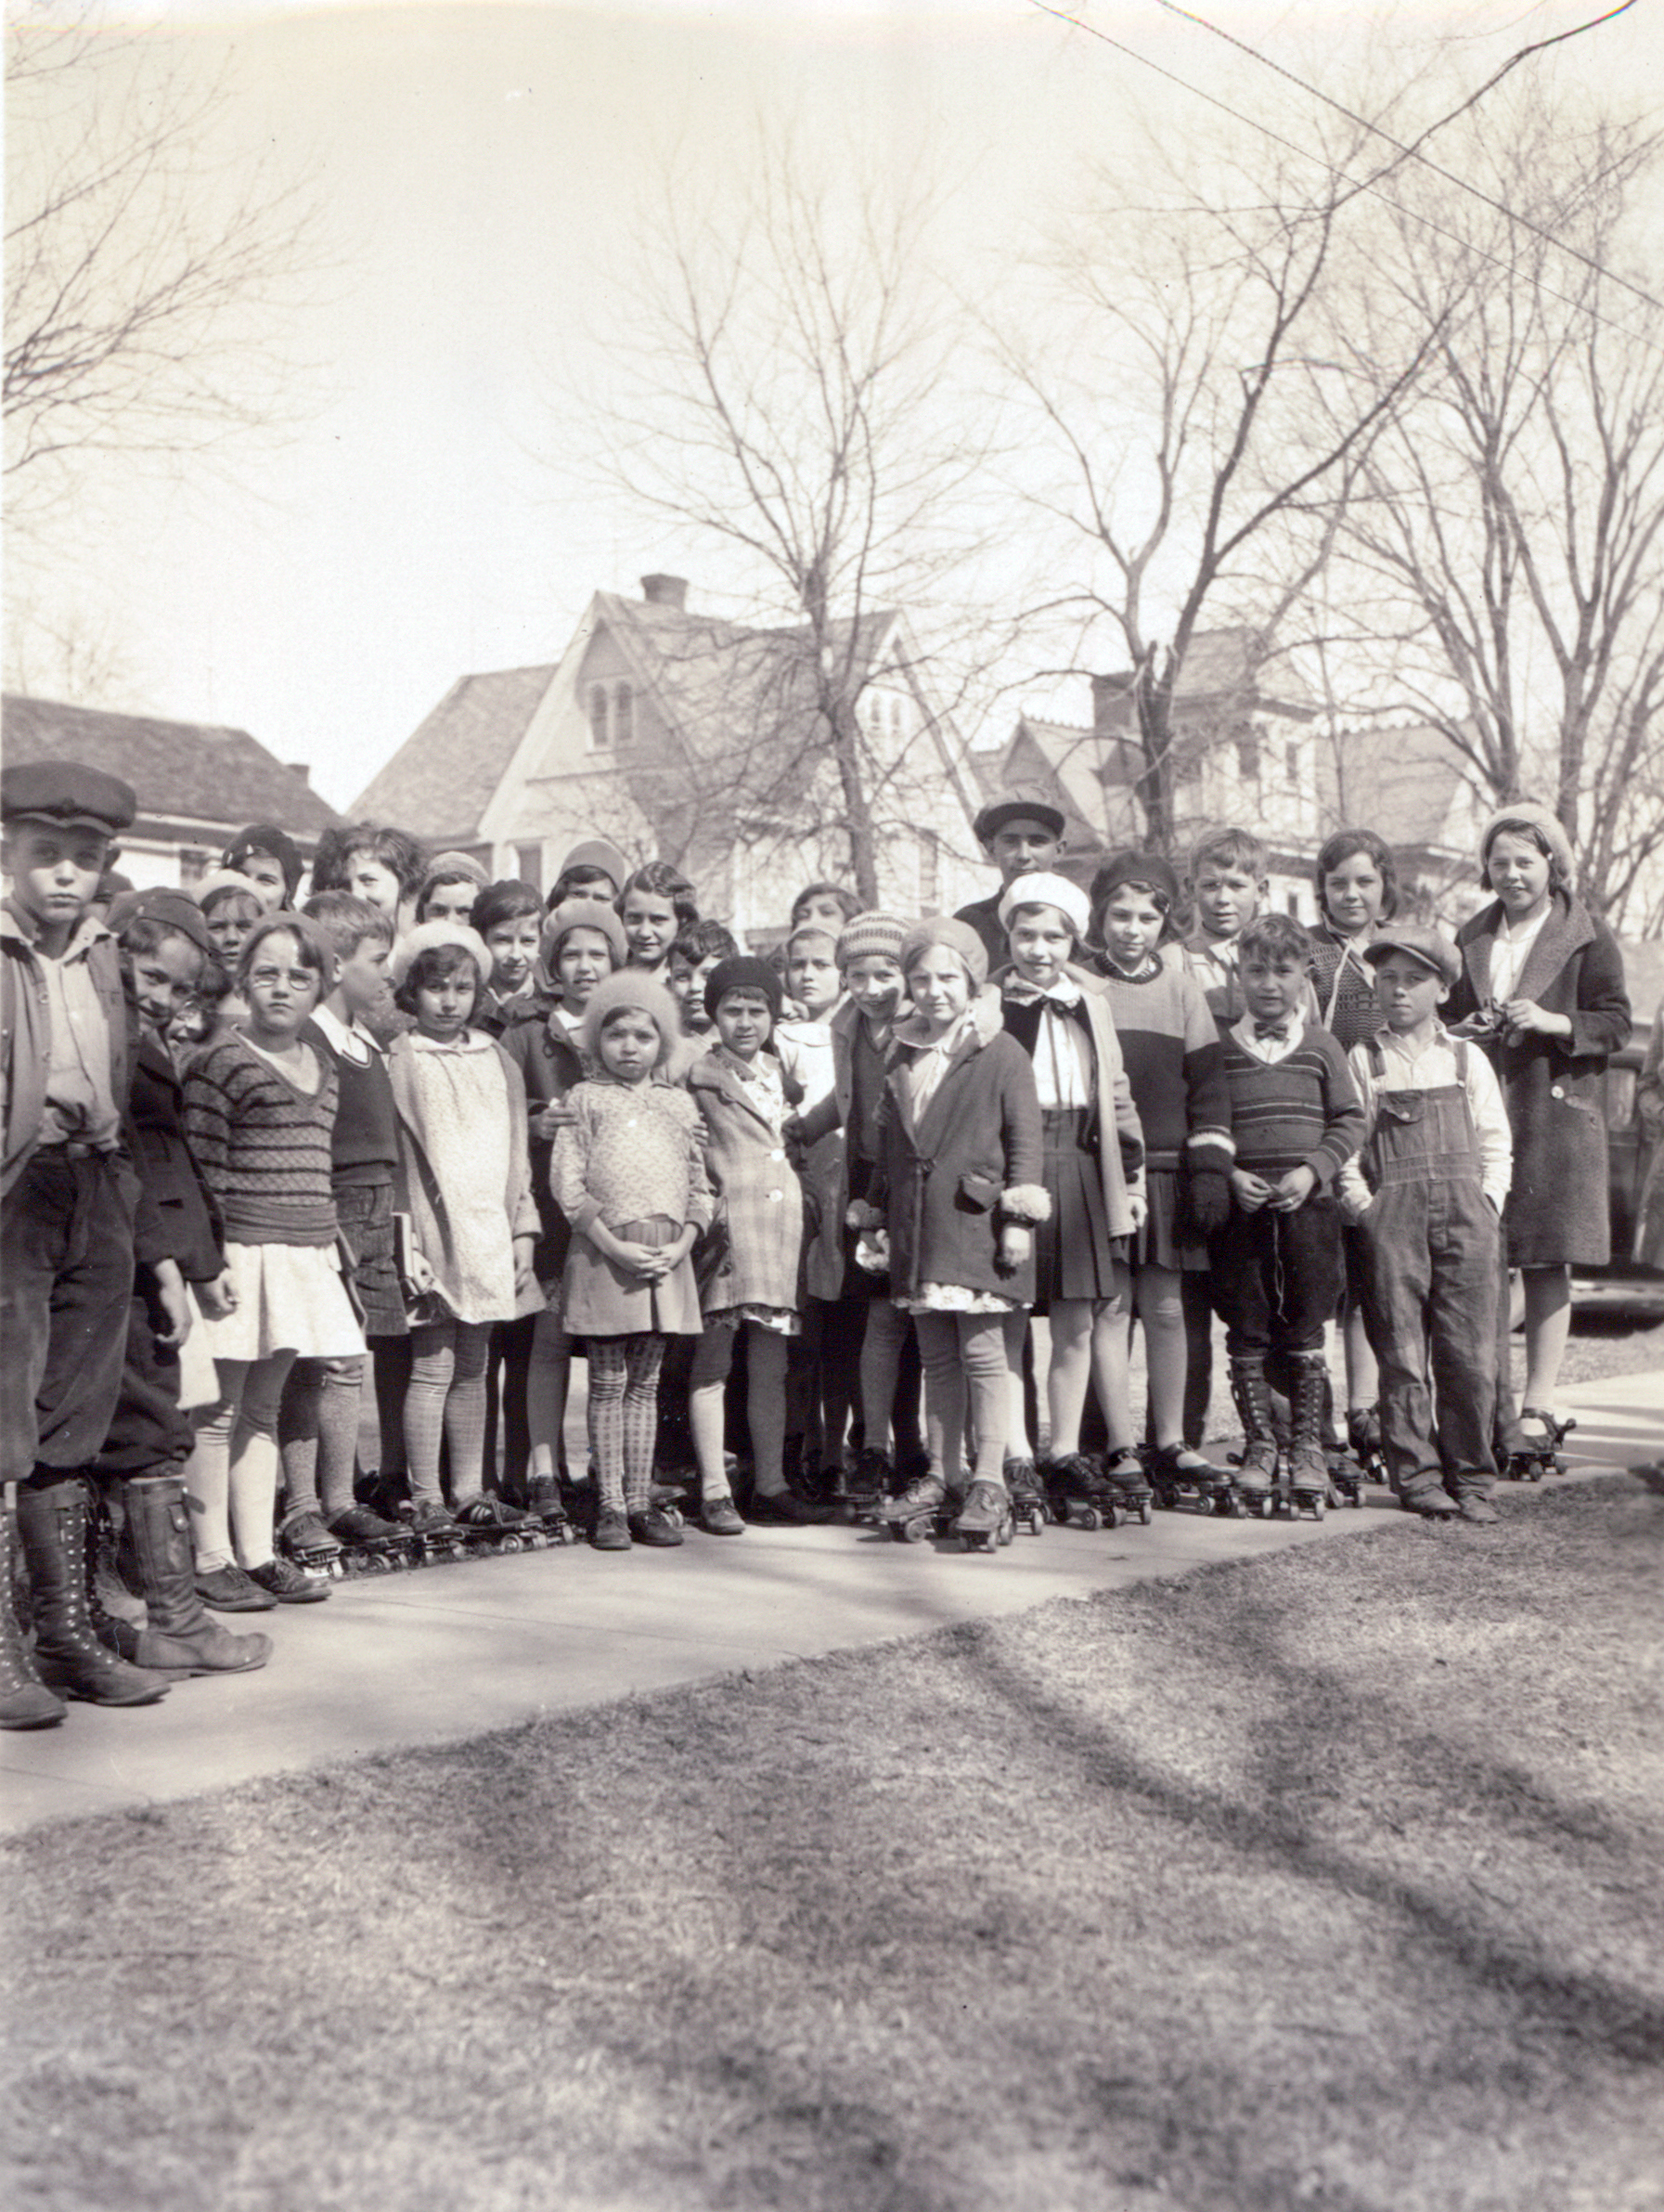 Children with skates, undated.